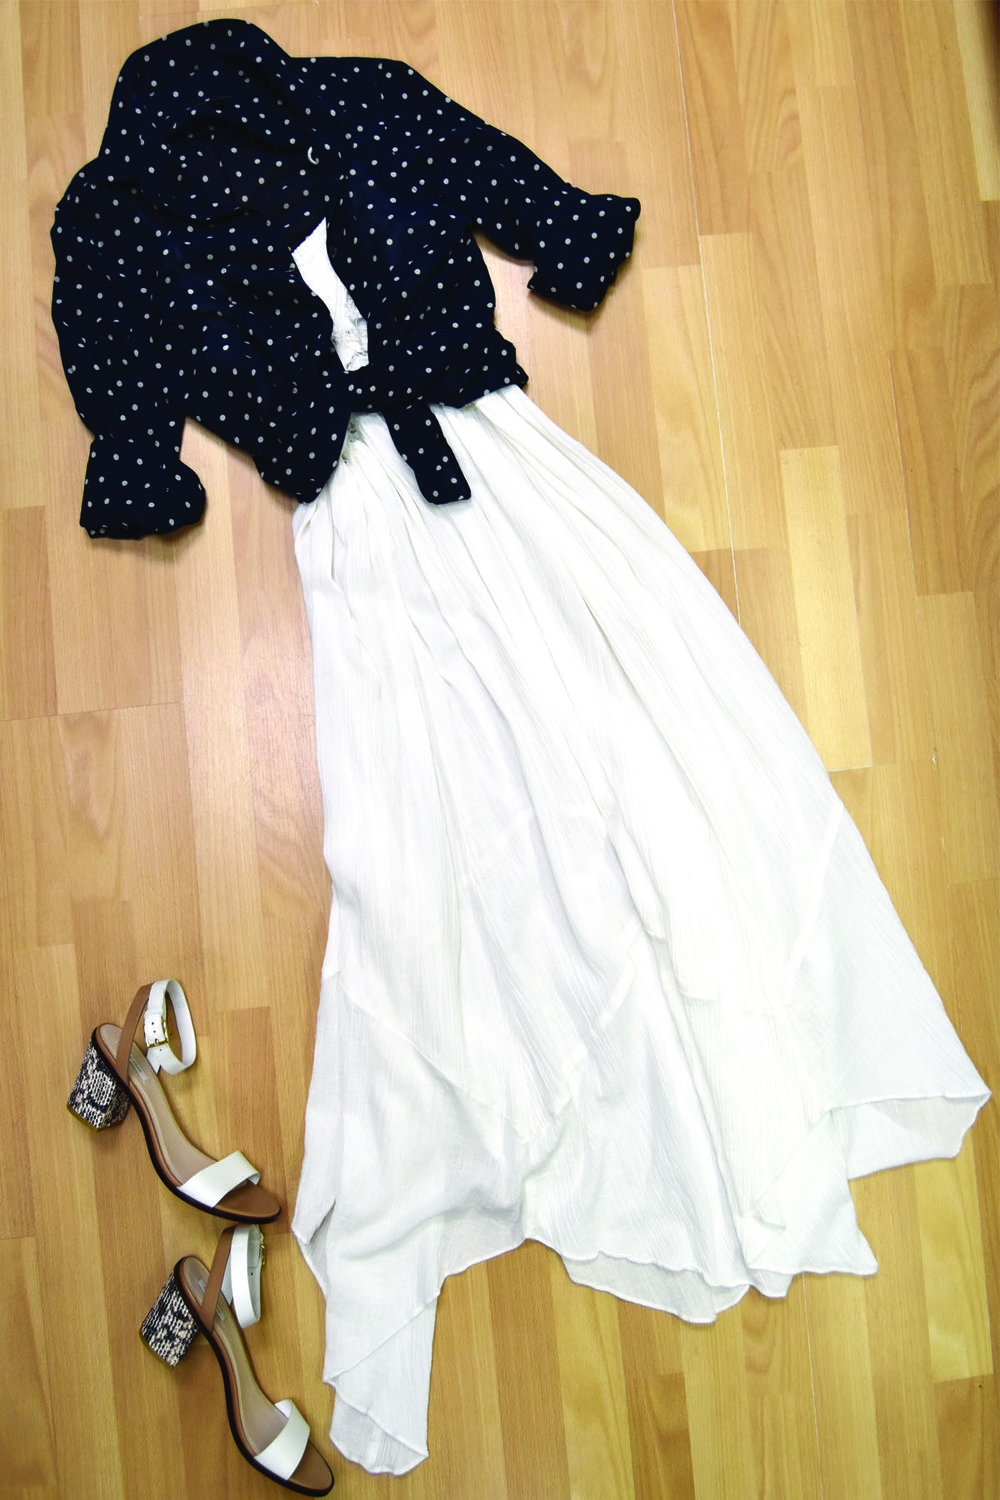 Free People dress, J. Crew blouse, Cole Haan sandals